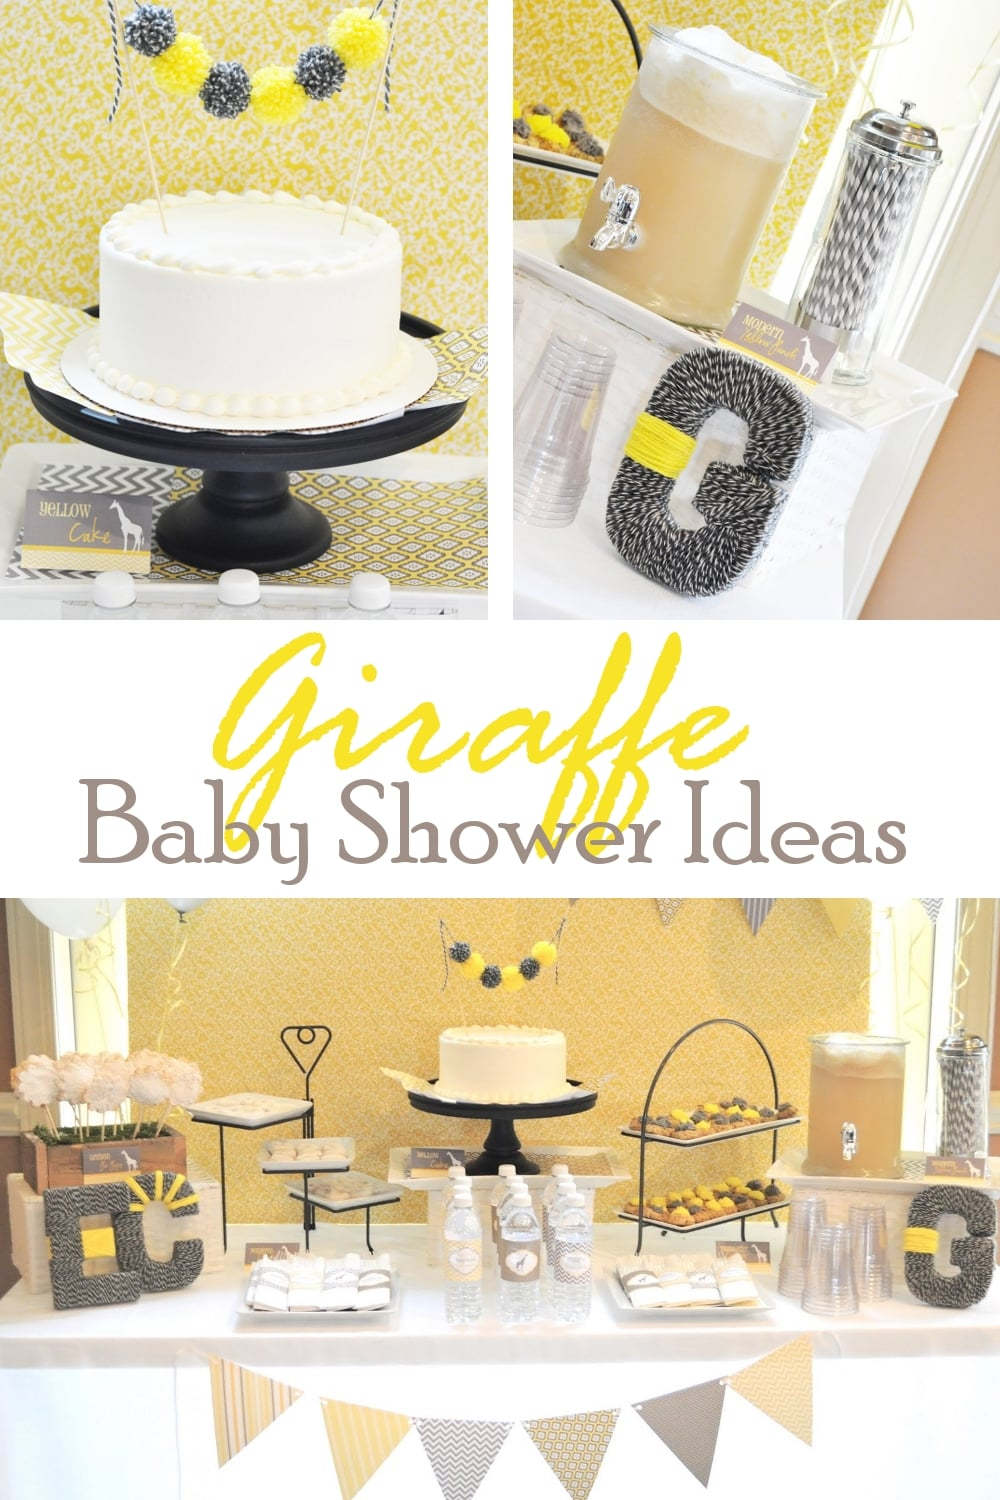 giraffe baby shower ideas, Baby shower